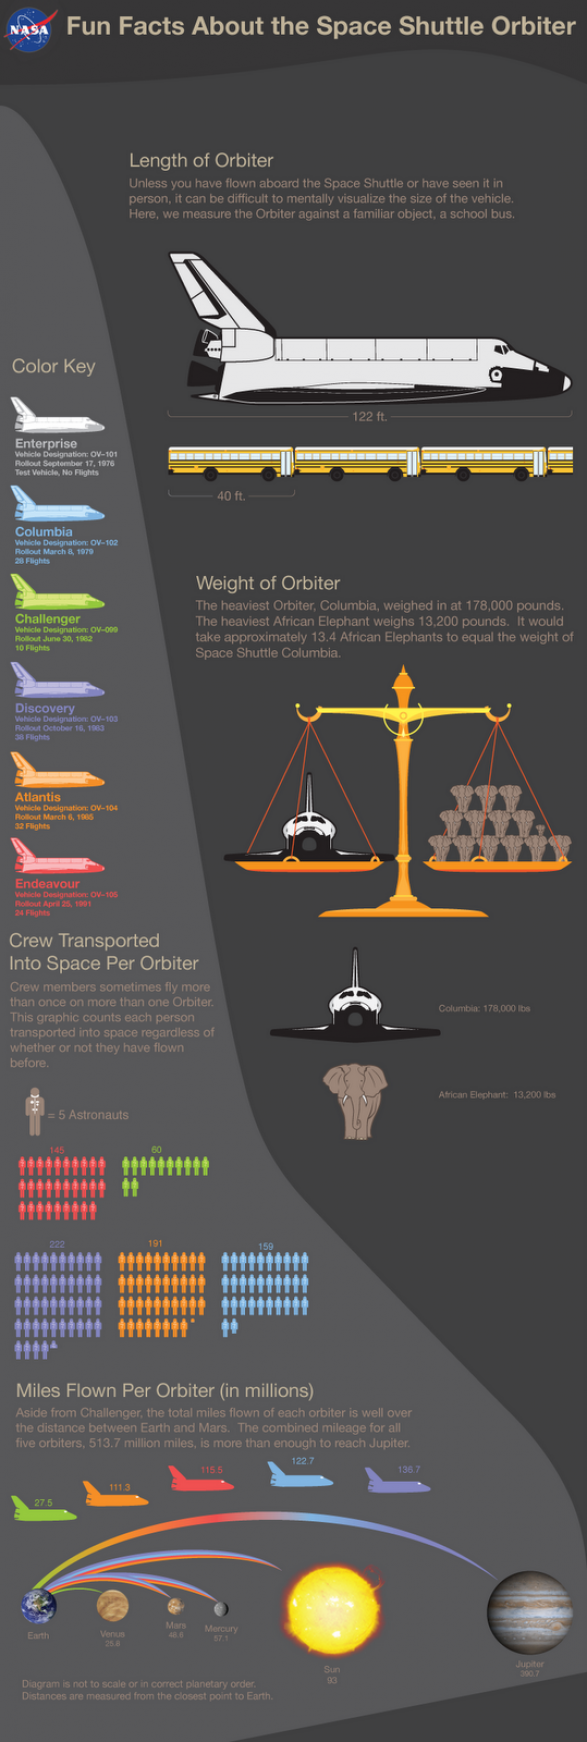 Fun Facts about the Space Shuttle Orbiter | Science ...